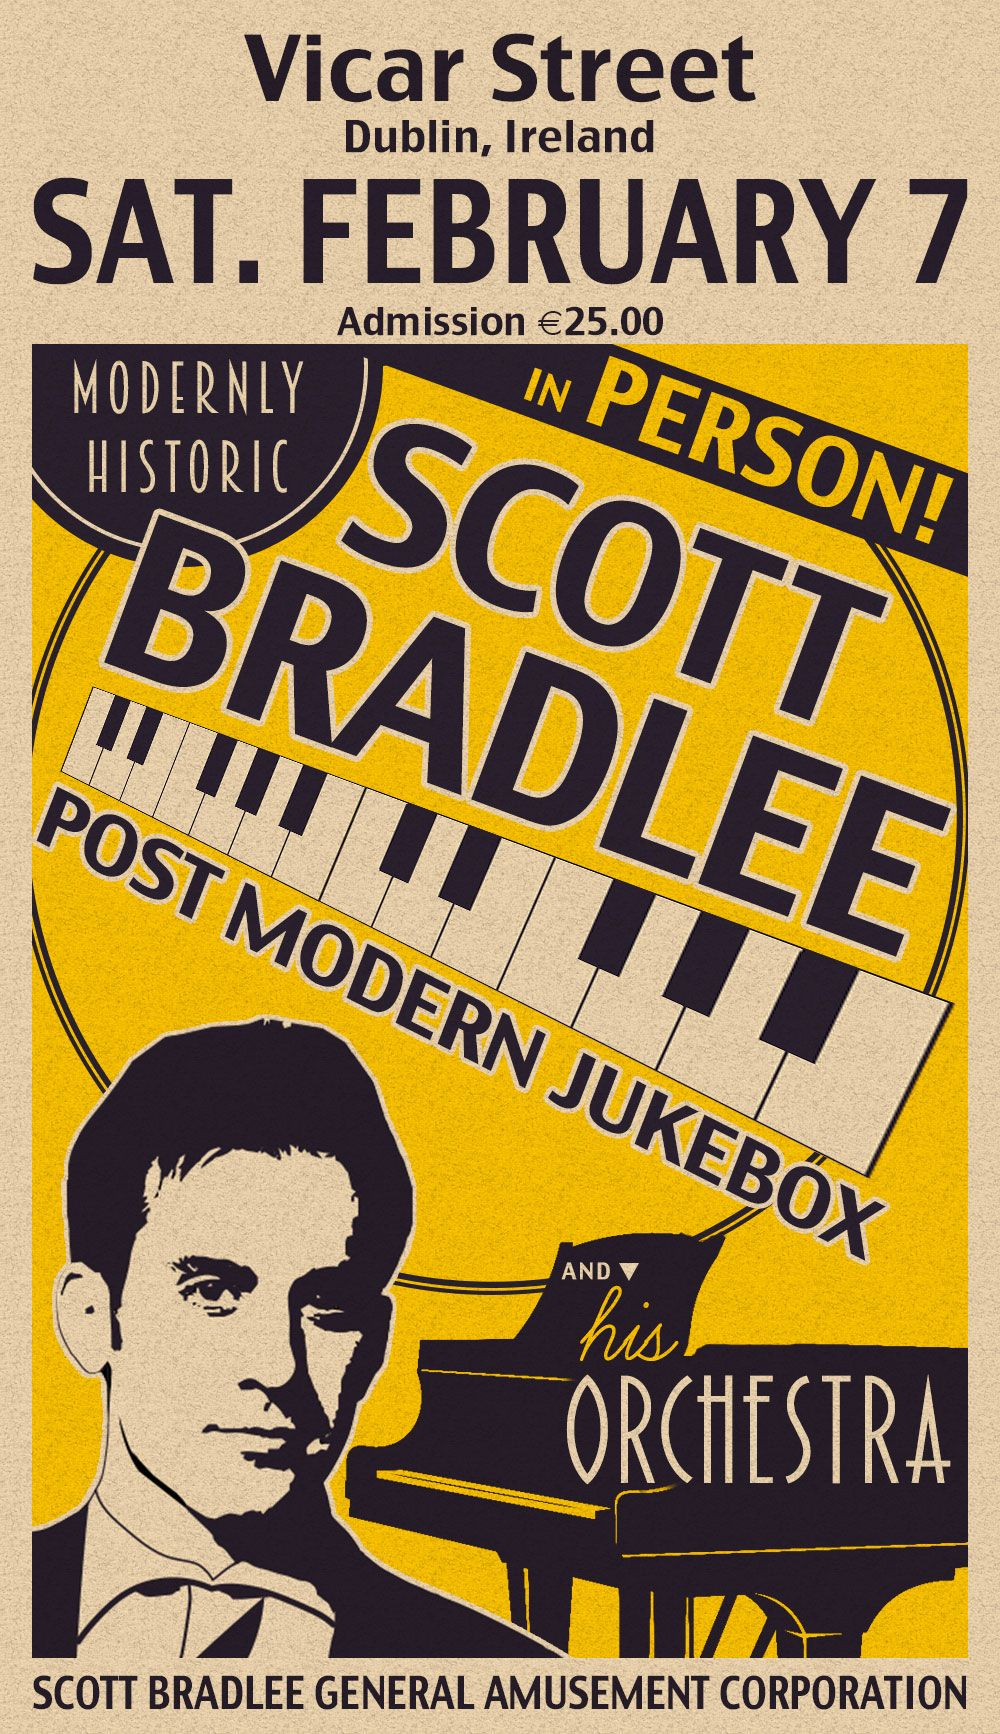 Scott Bradlee Event Poster